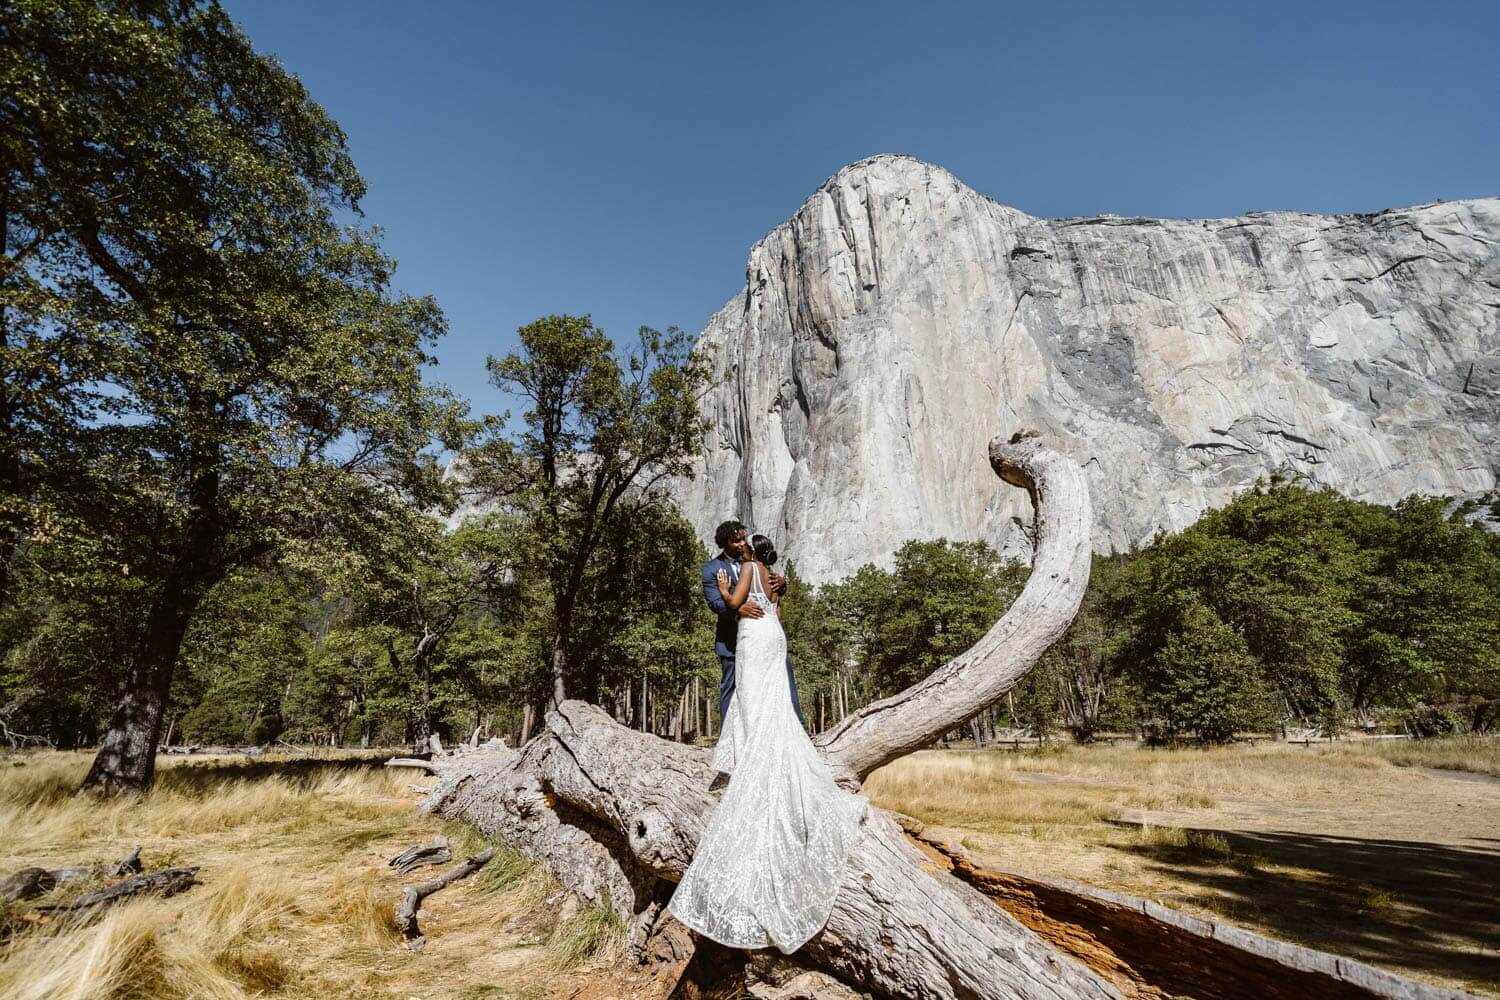 Bride and Groom on Log Yosemite Elopement Guide and Packages